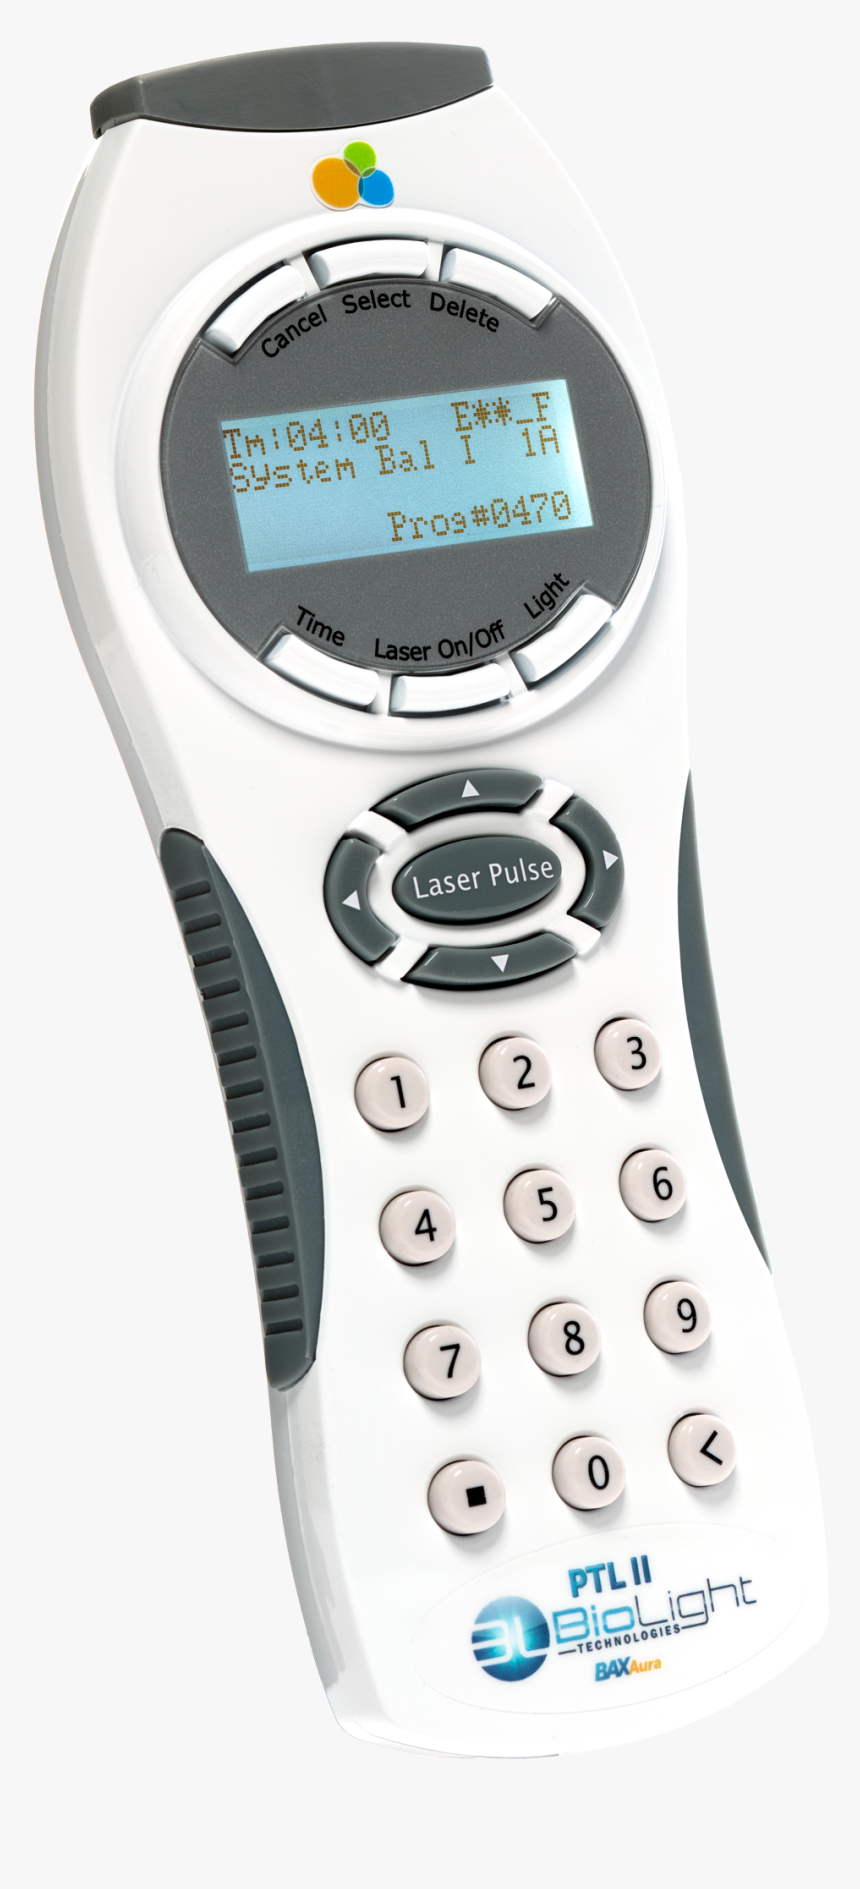 Feature Phone Hd Png Download Kindpng